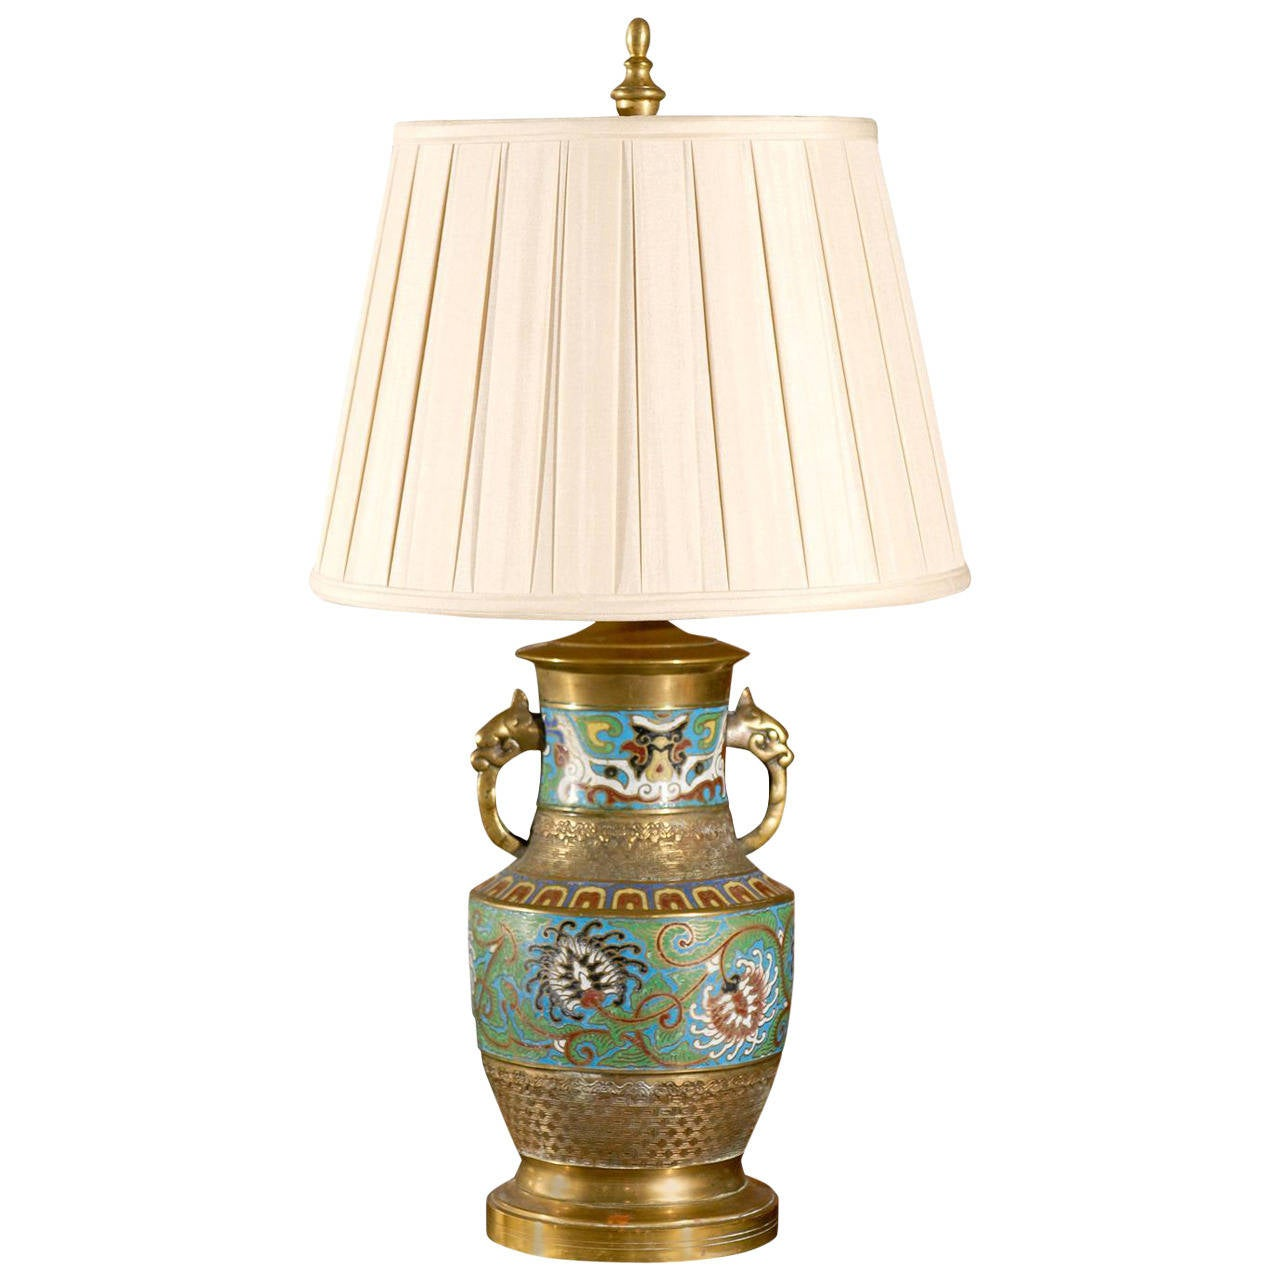 Superior Chinese Cloisonne Table Lamp For Sale